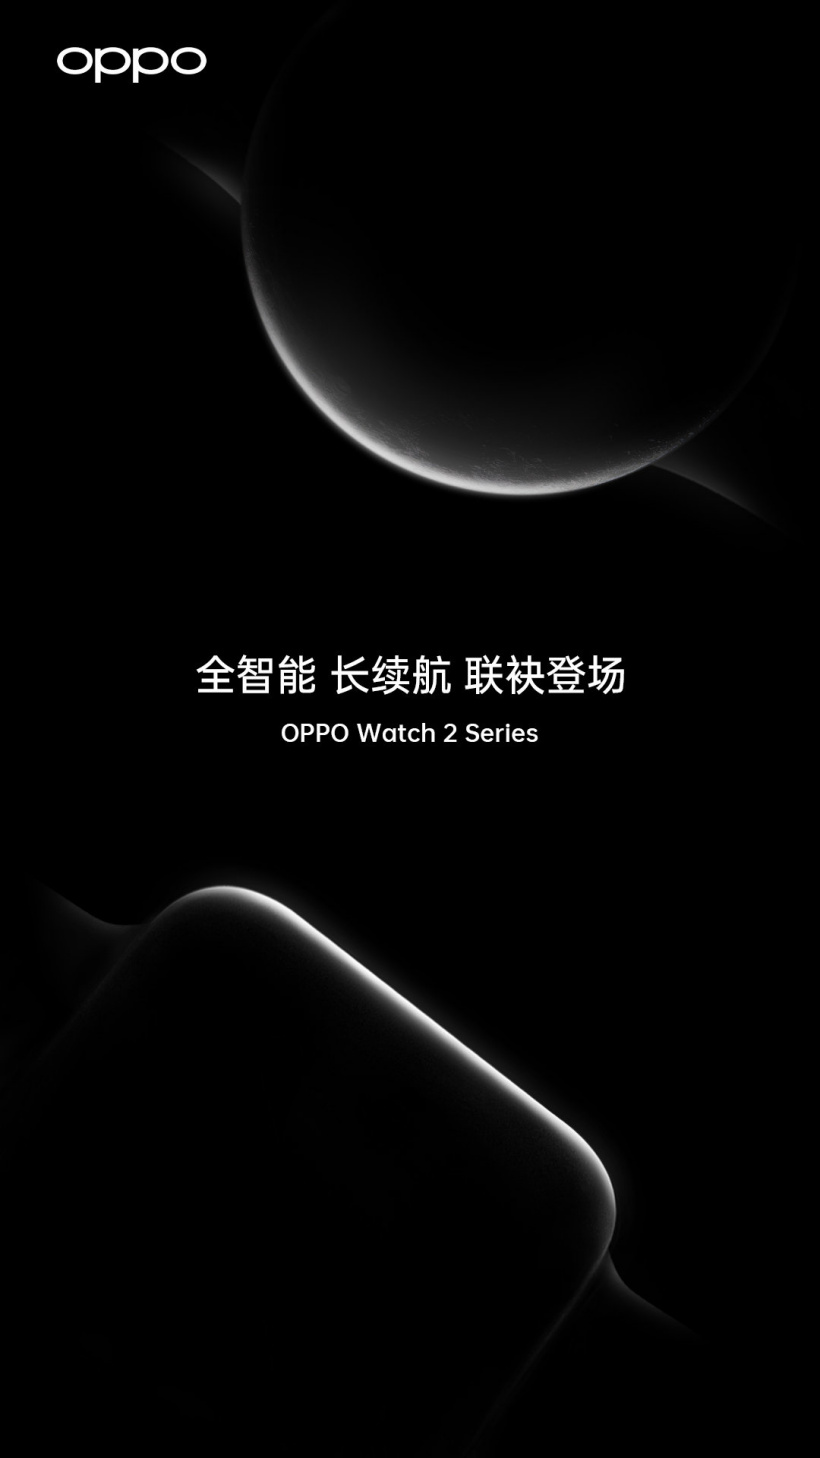 OPPO Watch 2 official poster